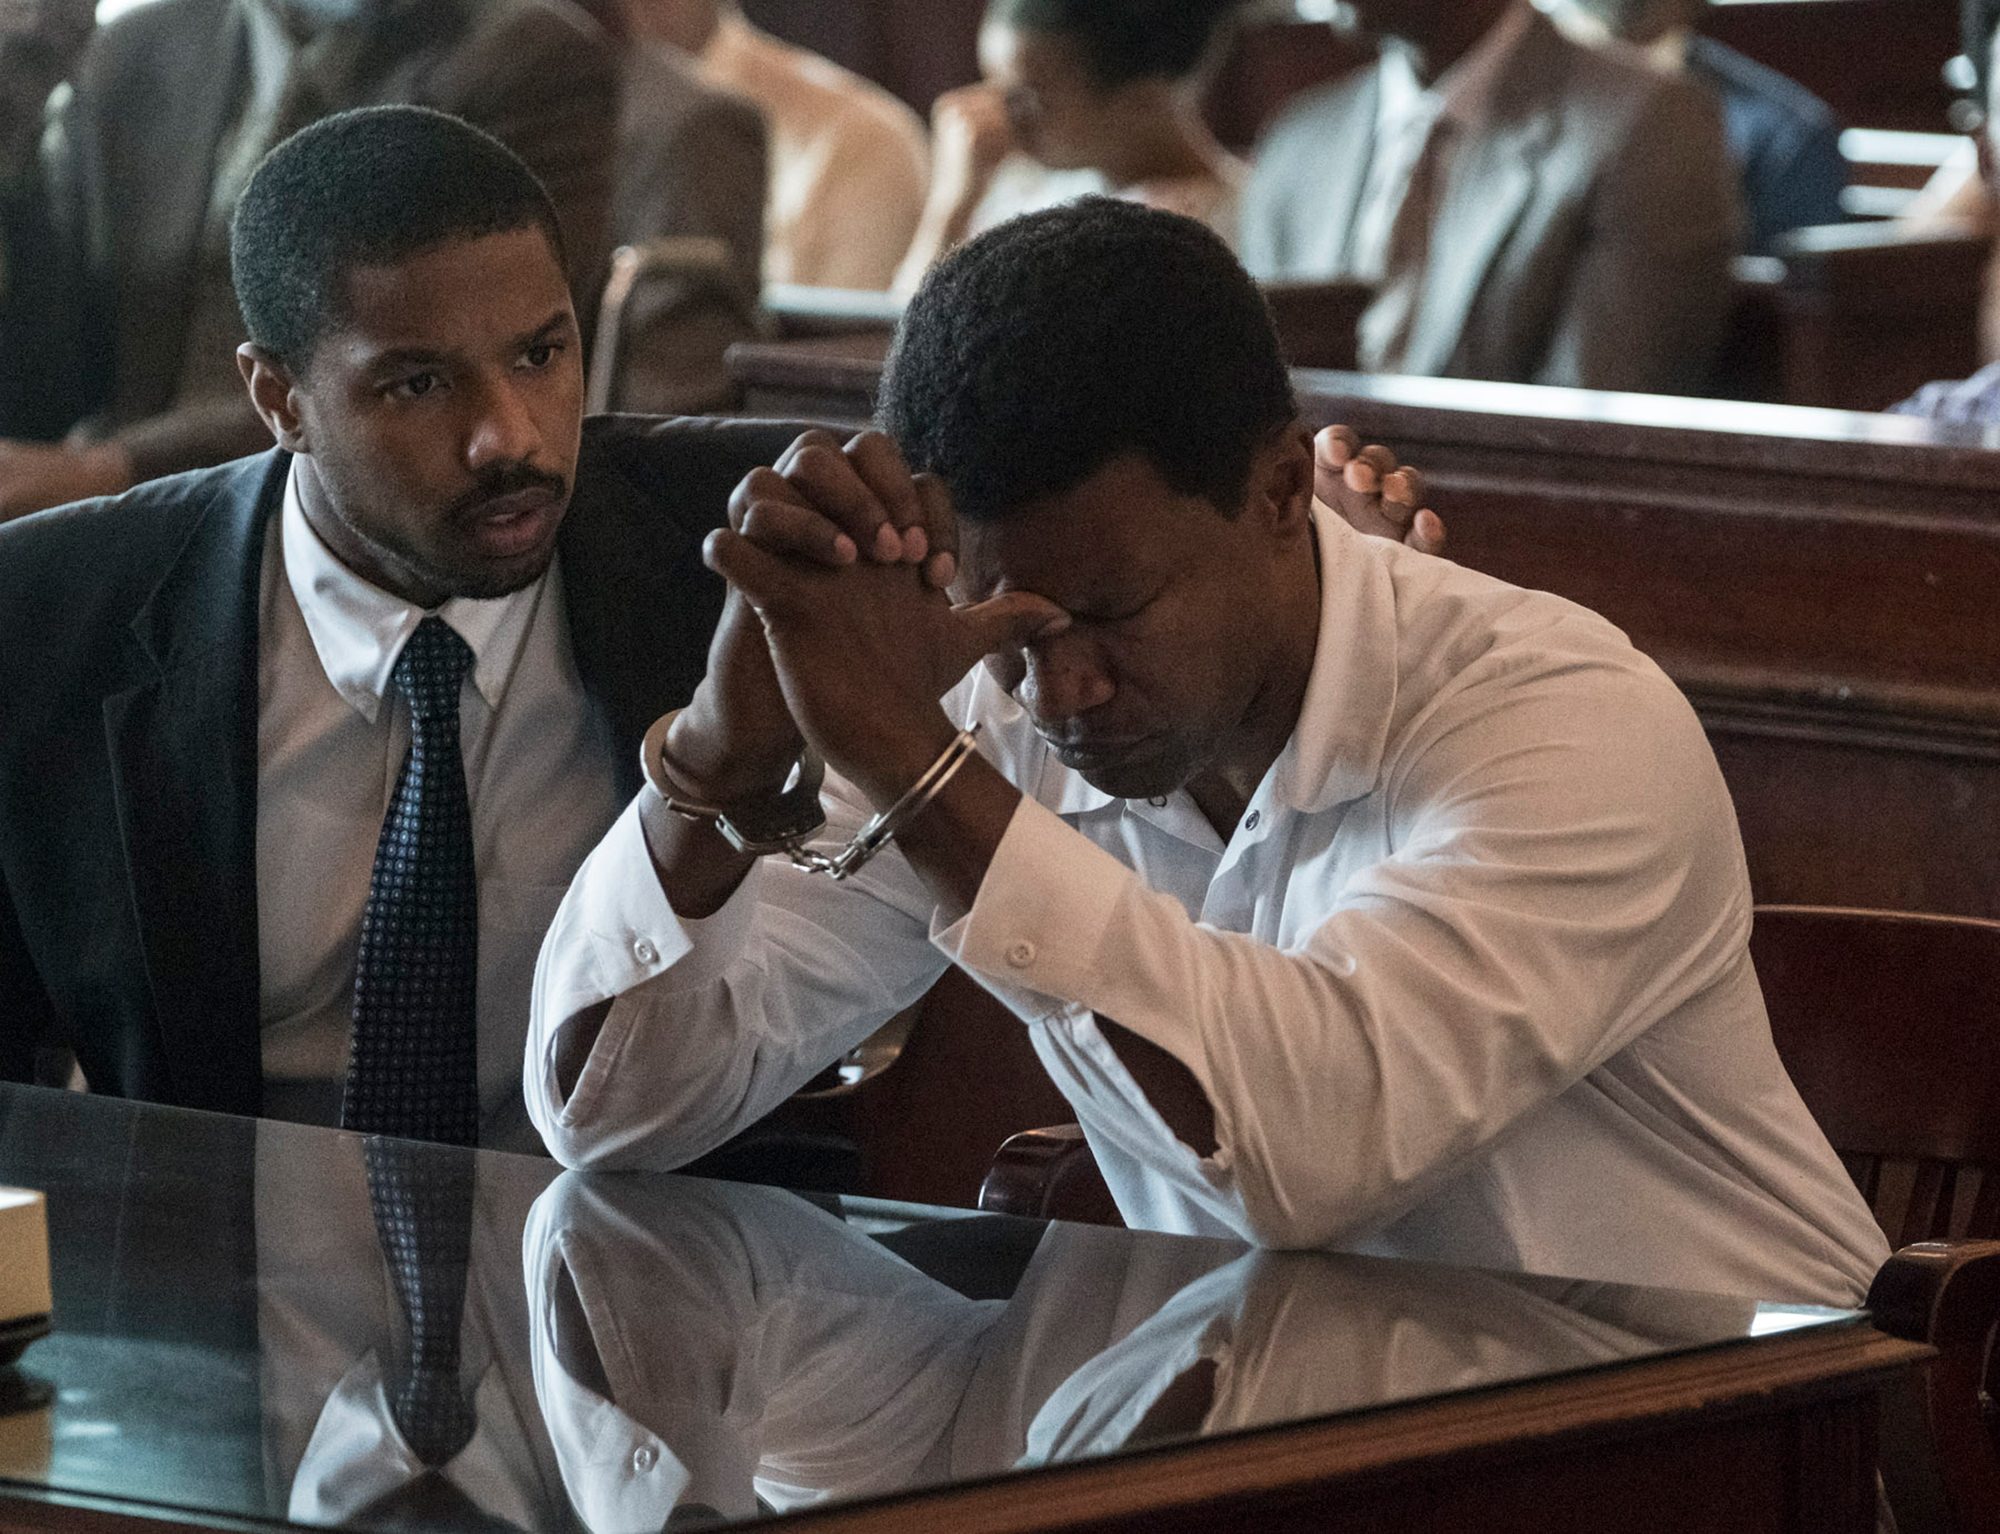 Jordan and Foxx star as Stevenson and McMillian in Just Mercy